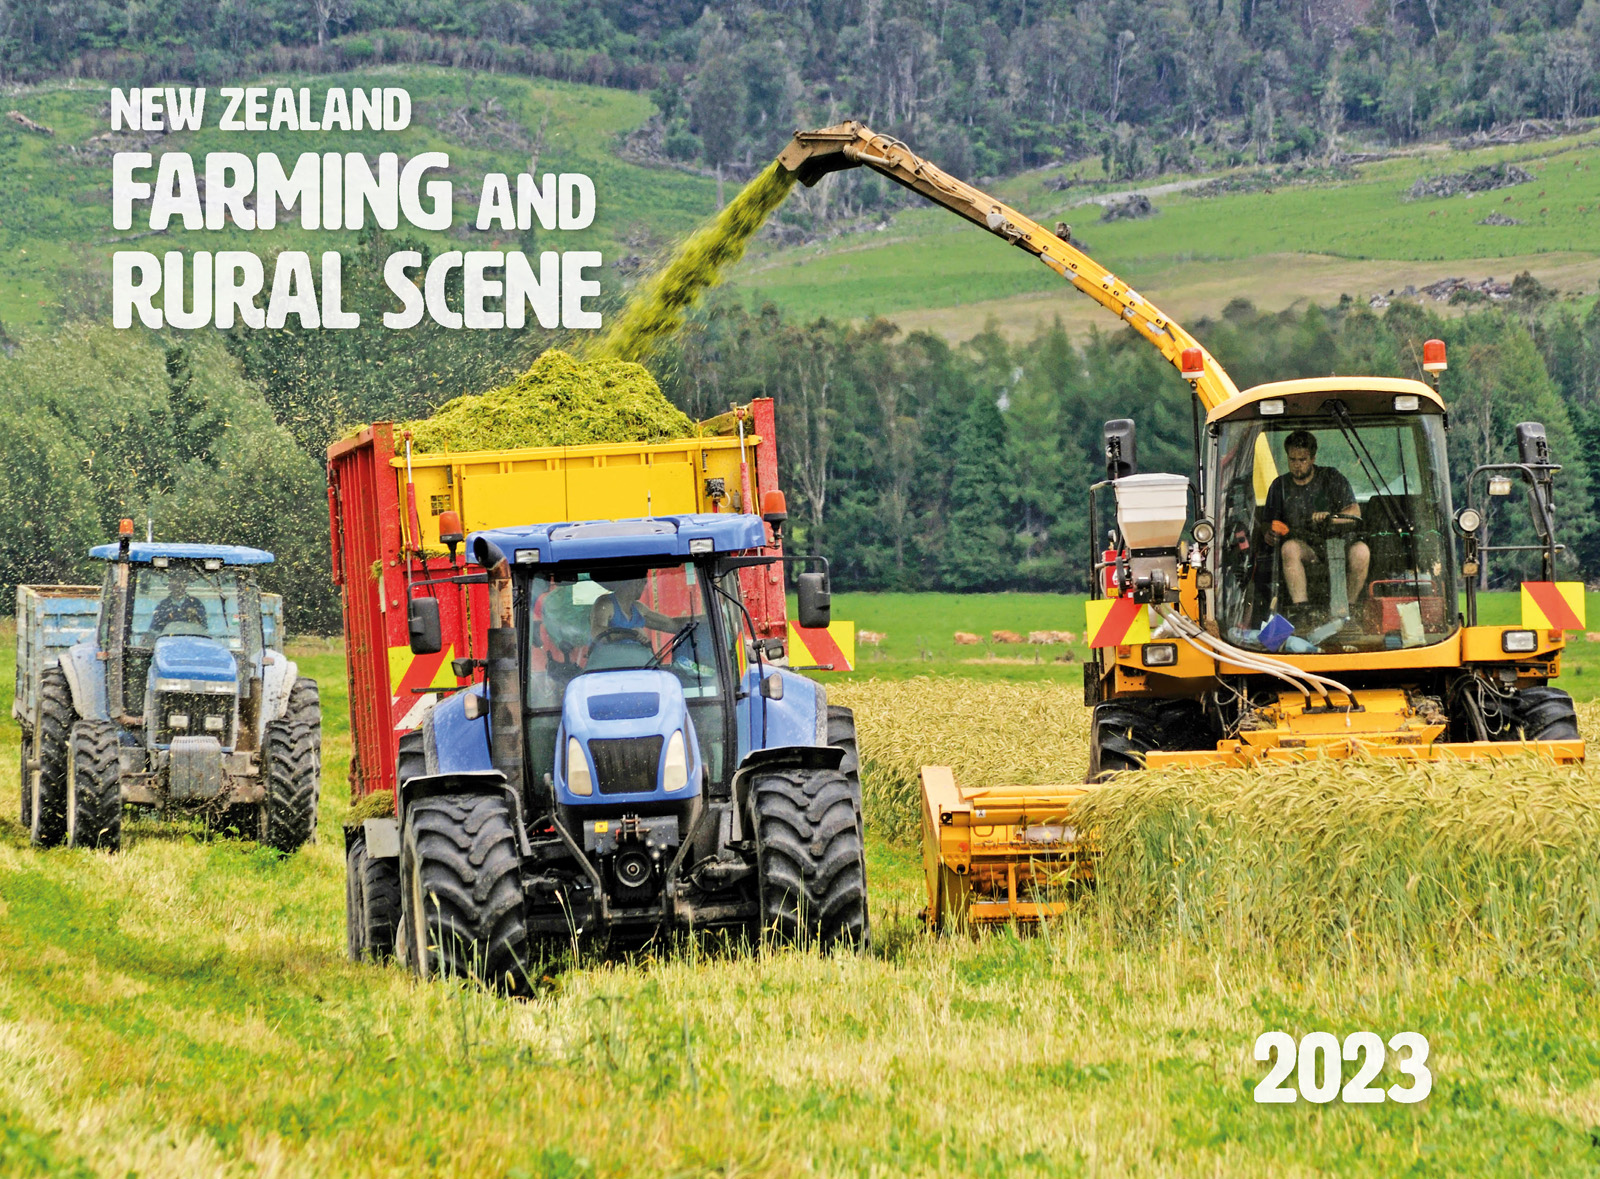 New Zealand Farming and Rural Scene 2022